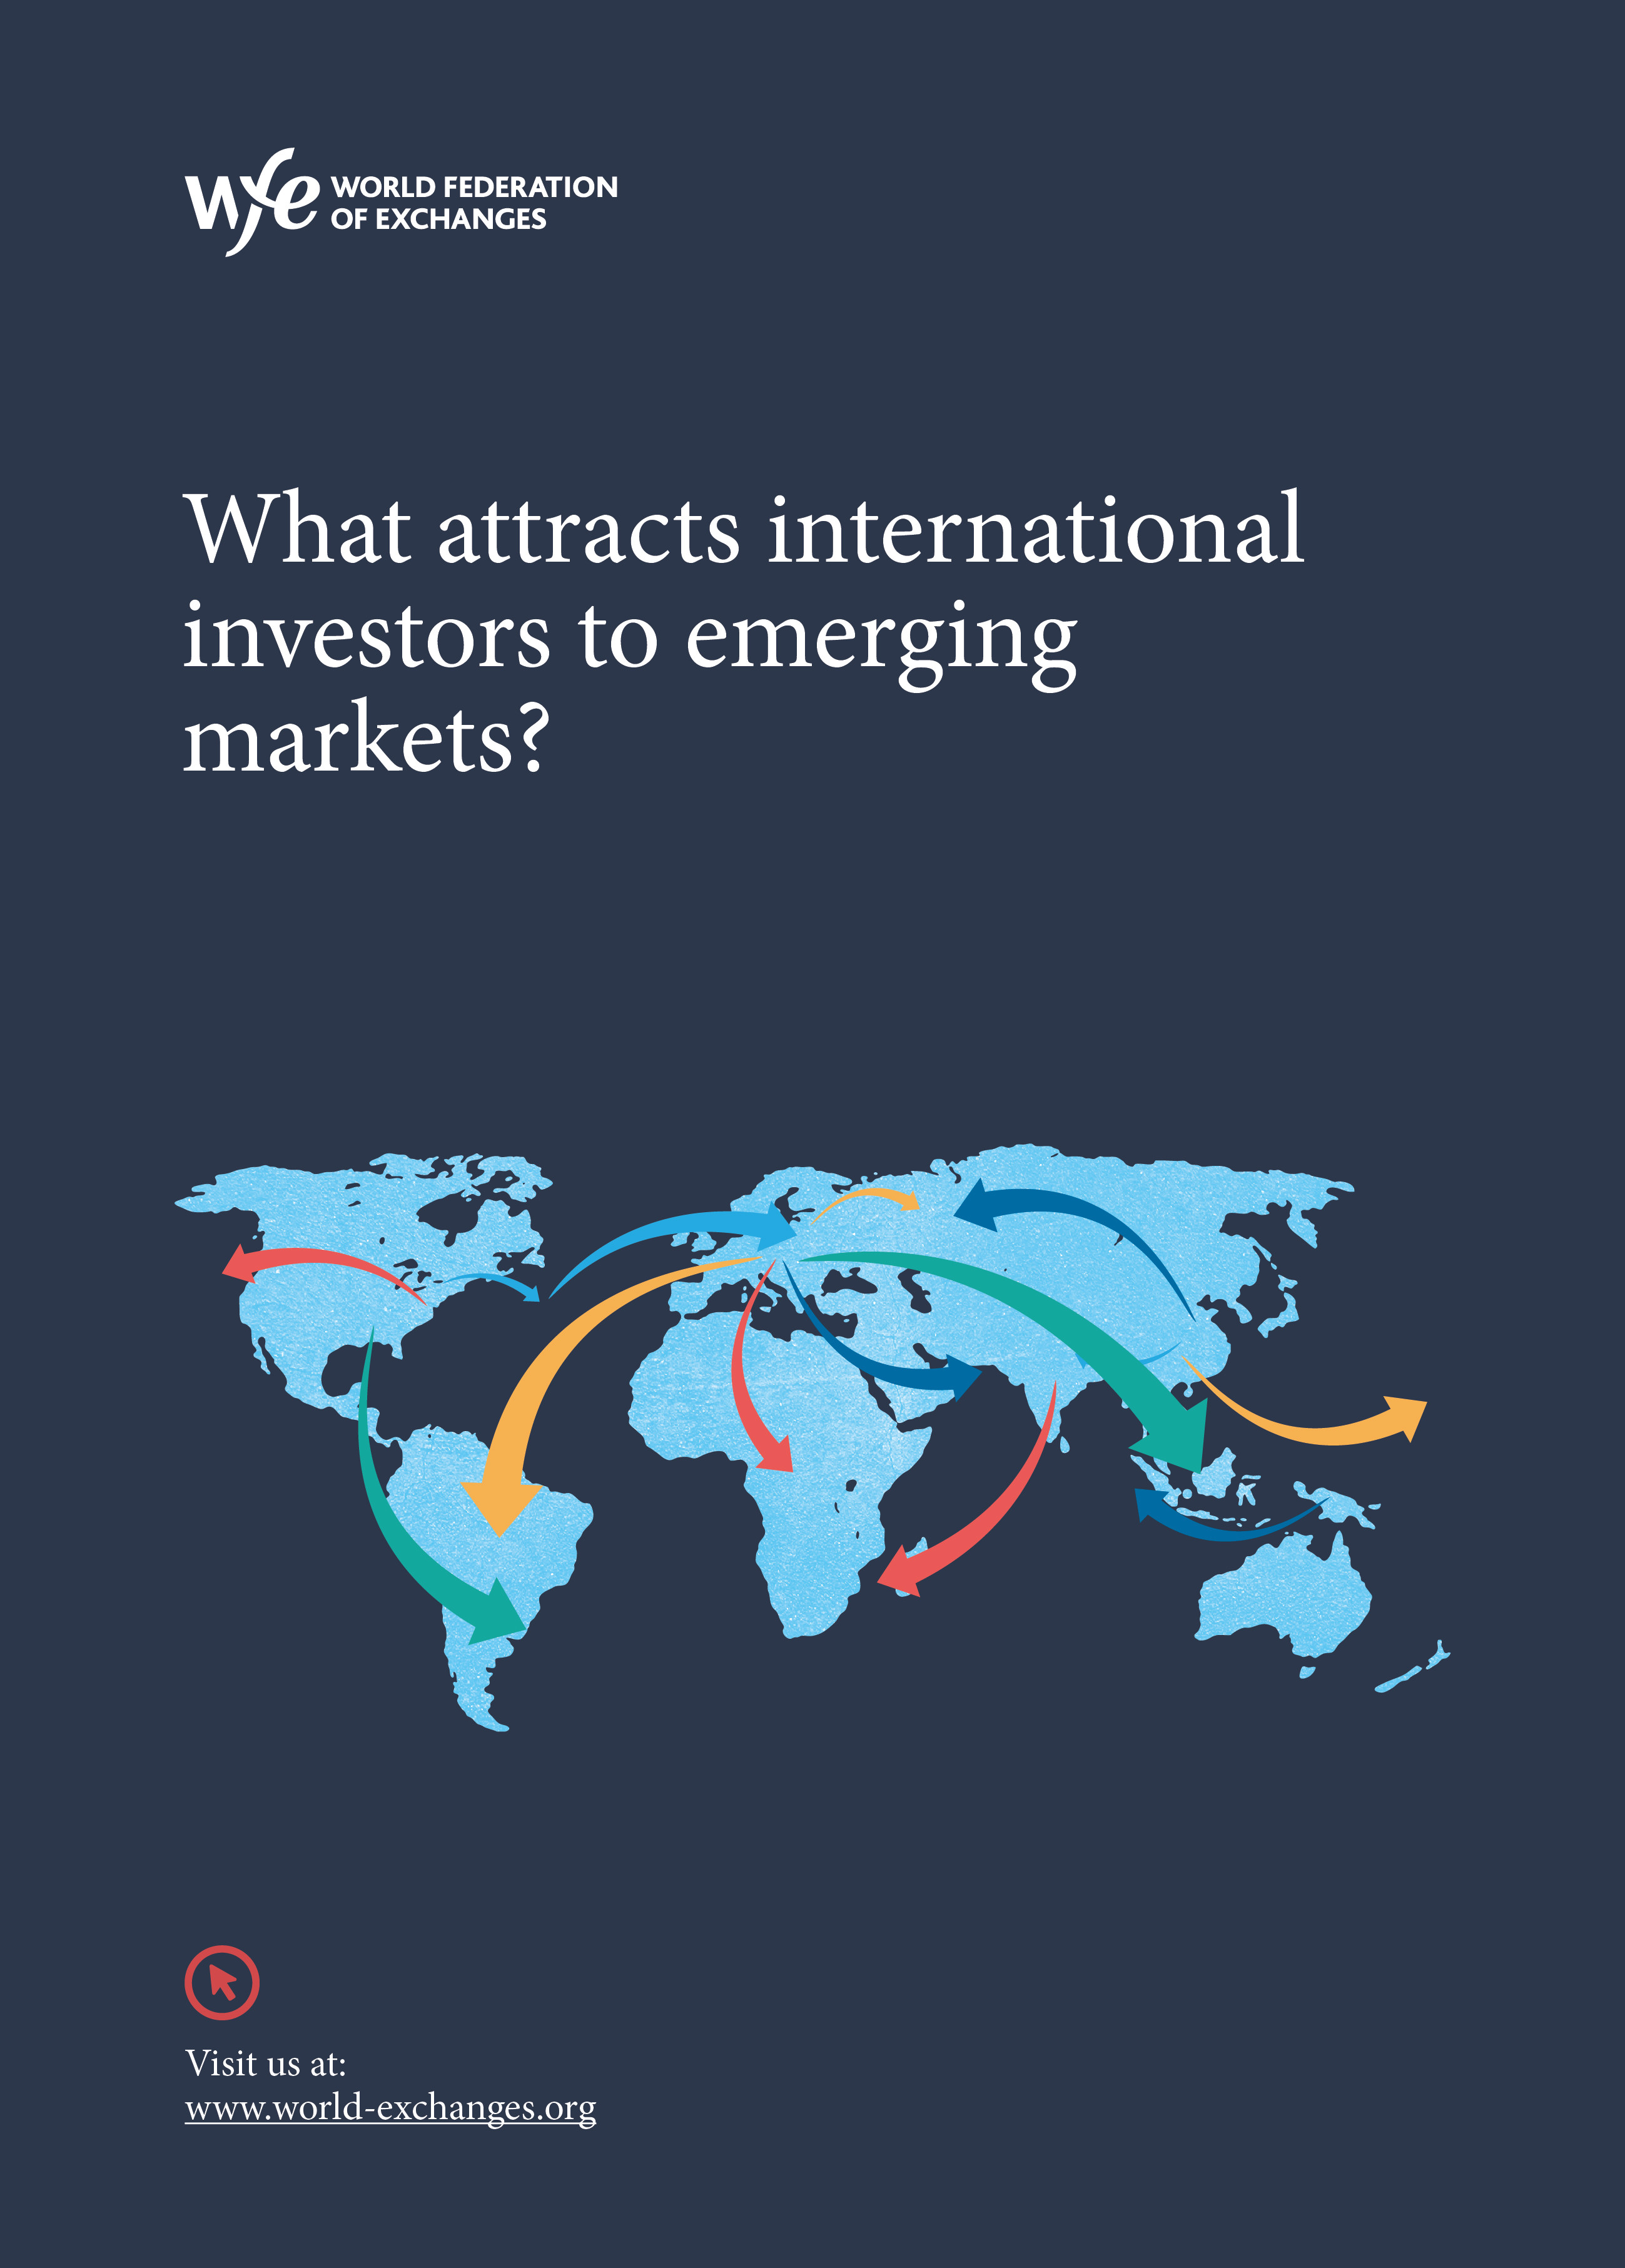 What attracts international investors to emerging markets?